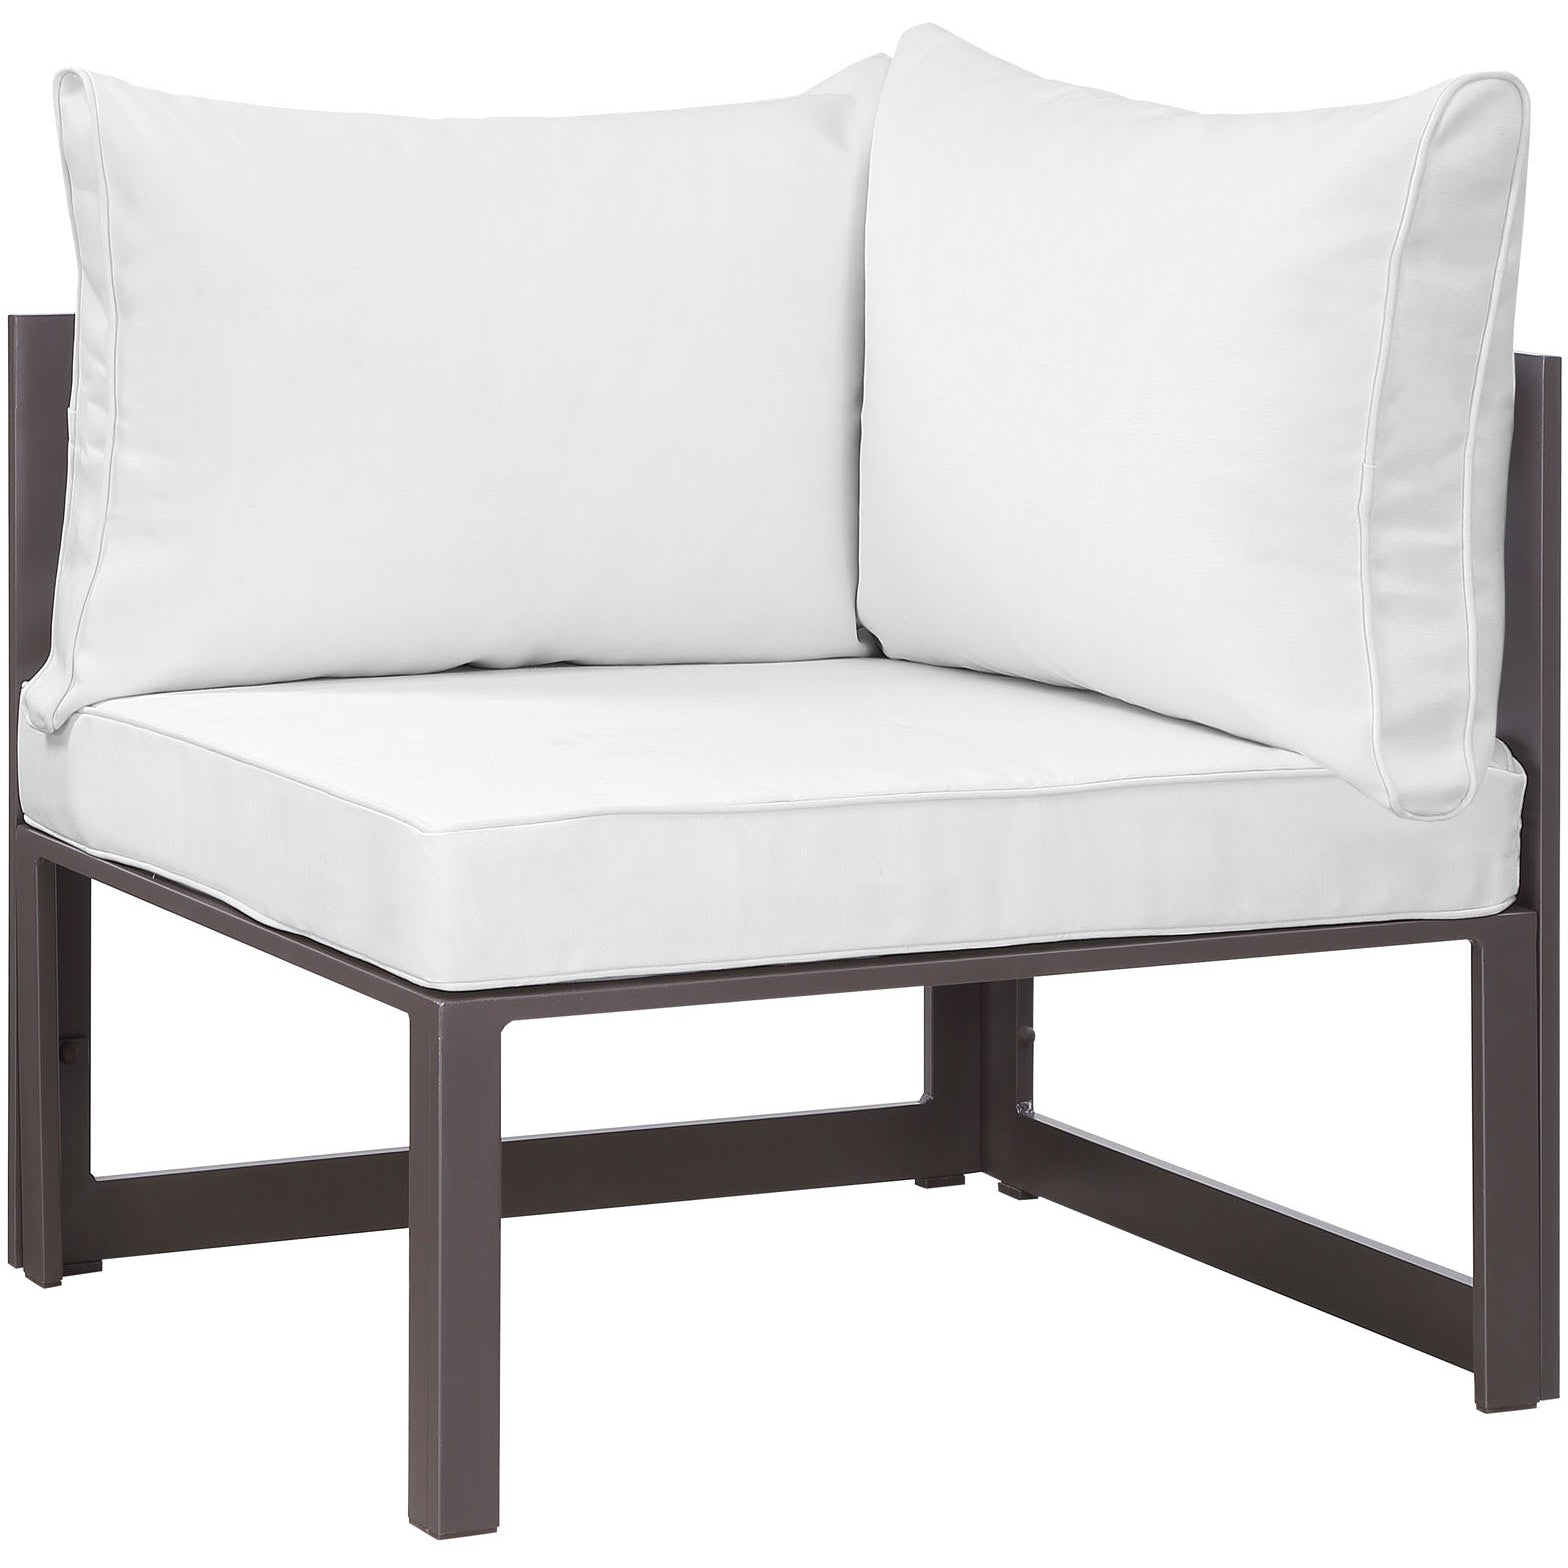 Fortuna 5 Piece Outdoor Patio Sectional Sofa Set - Brown White